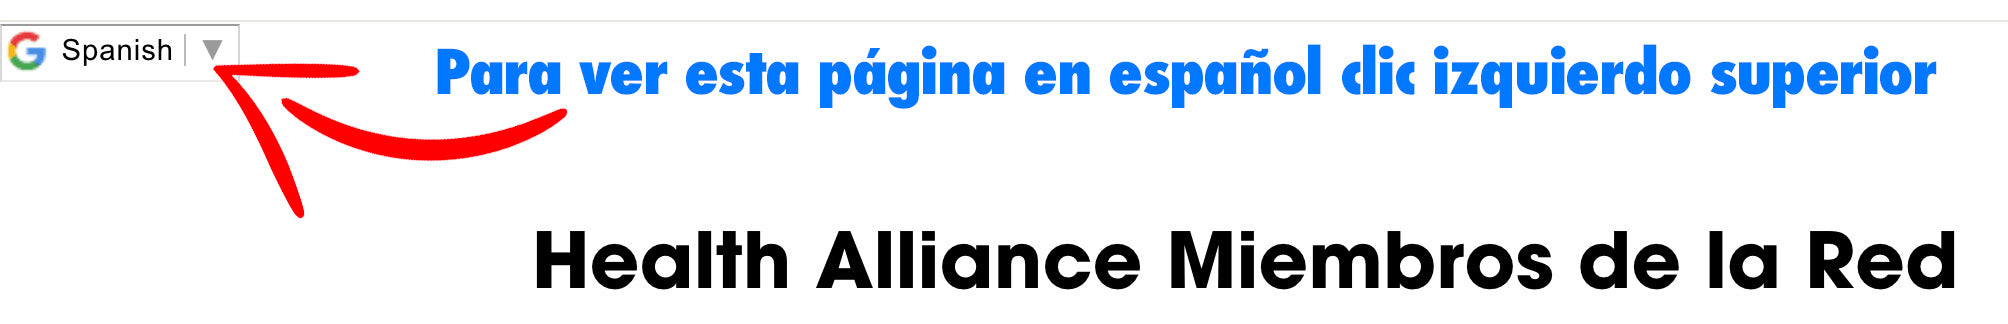 Health Alliance Network in Spanish